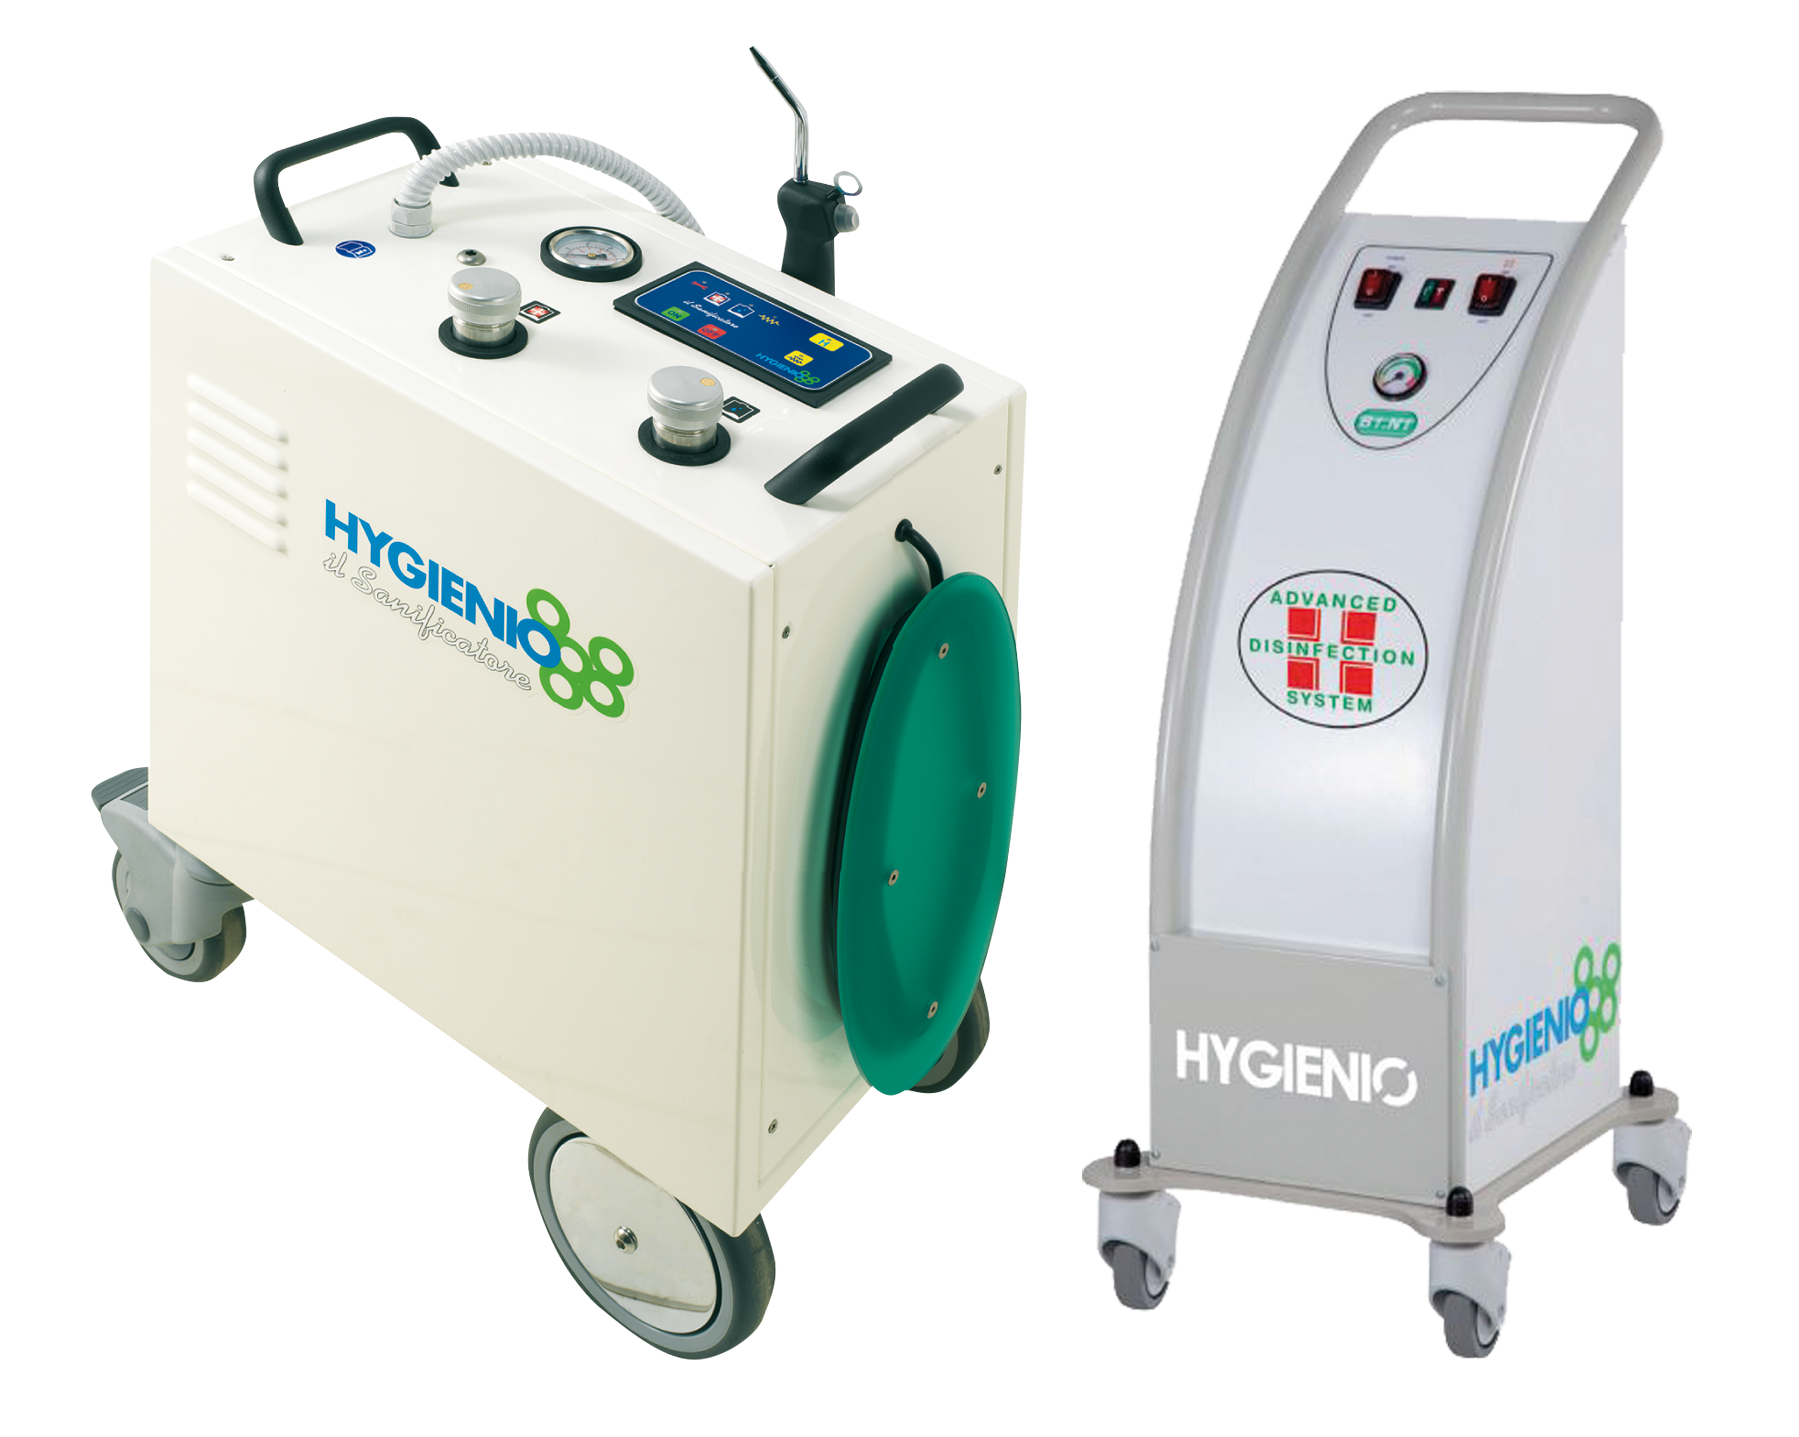 Hygienio Disinfection System